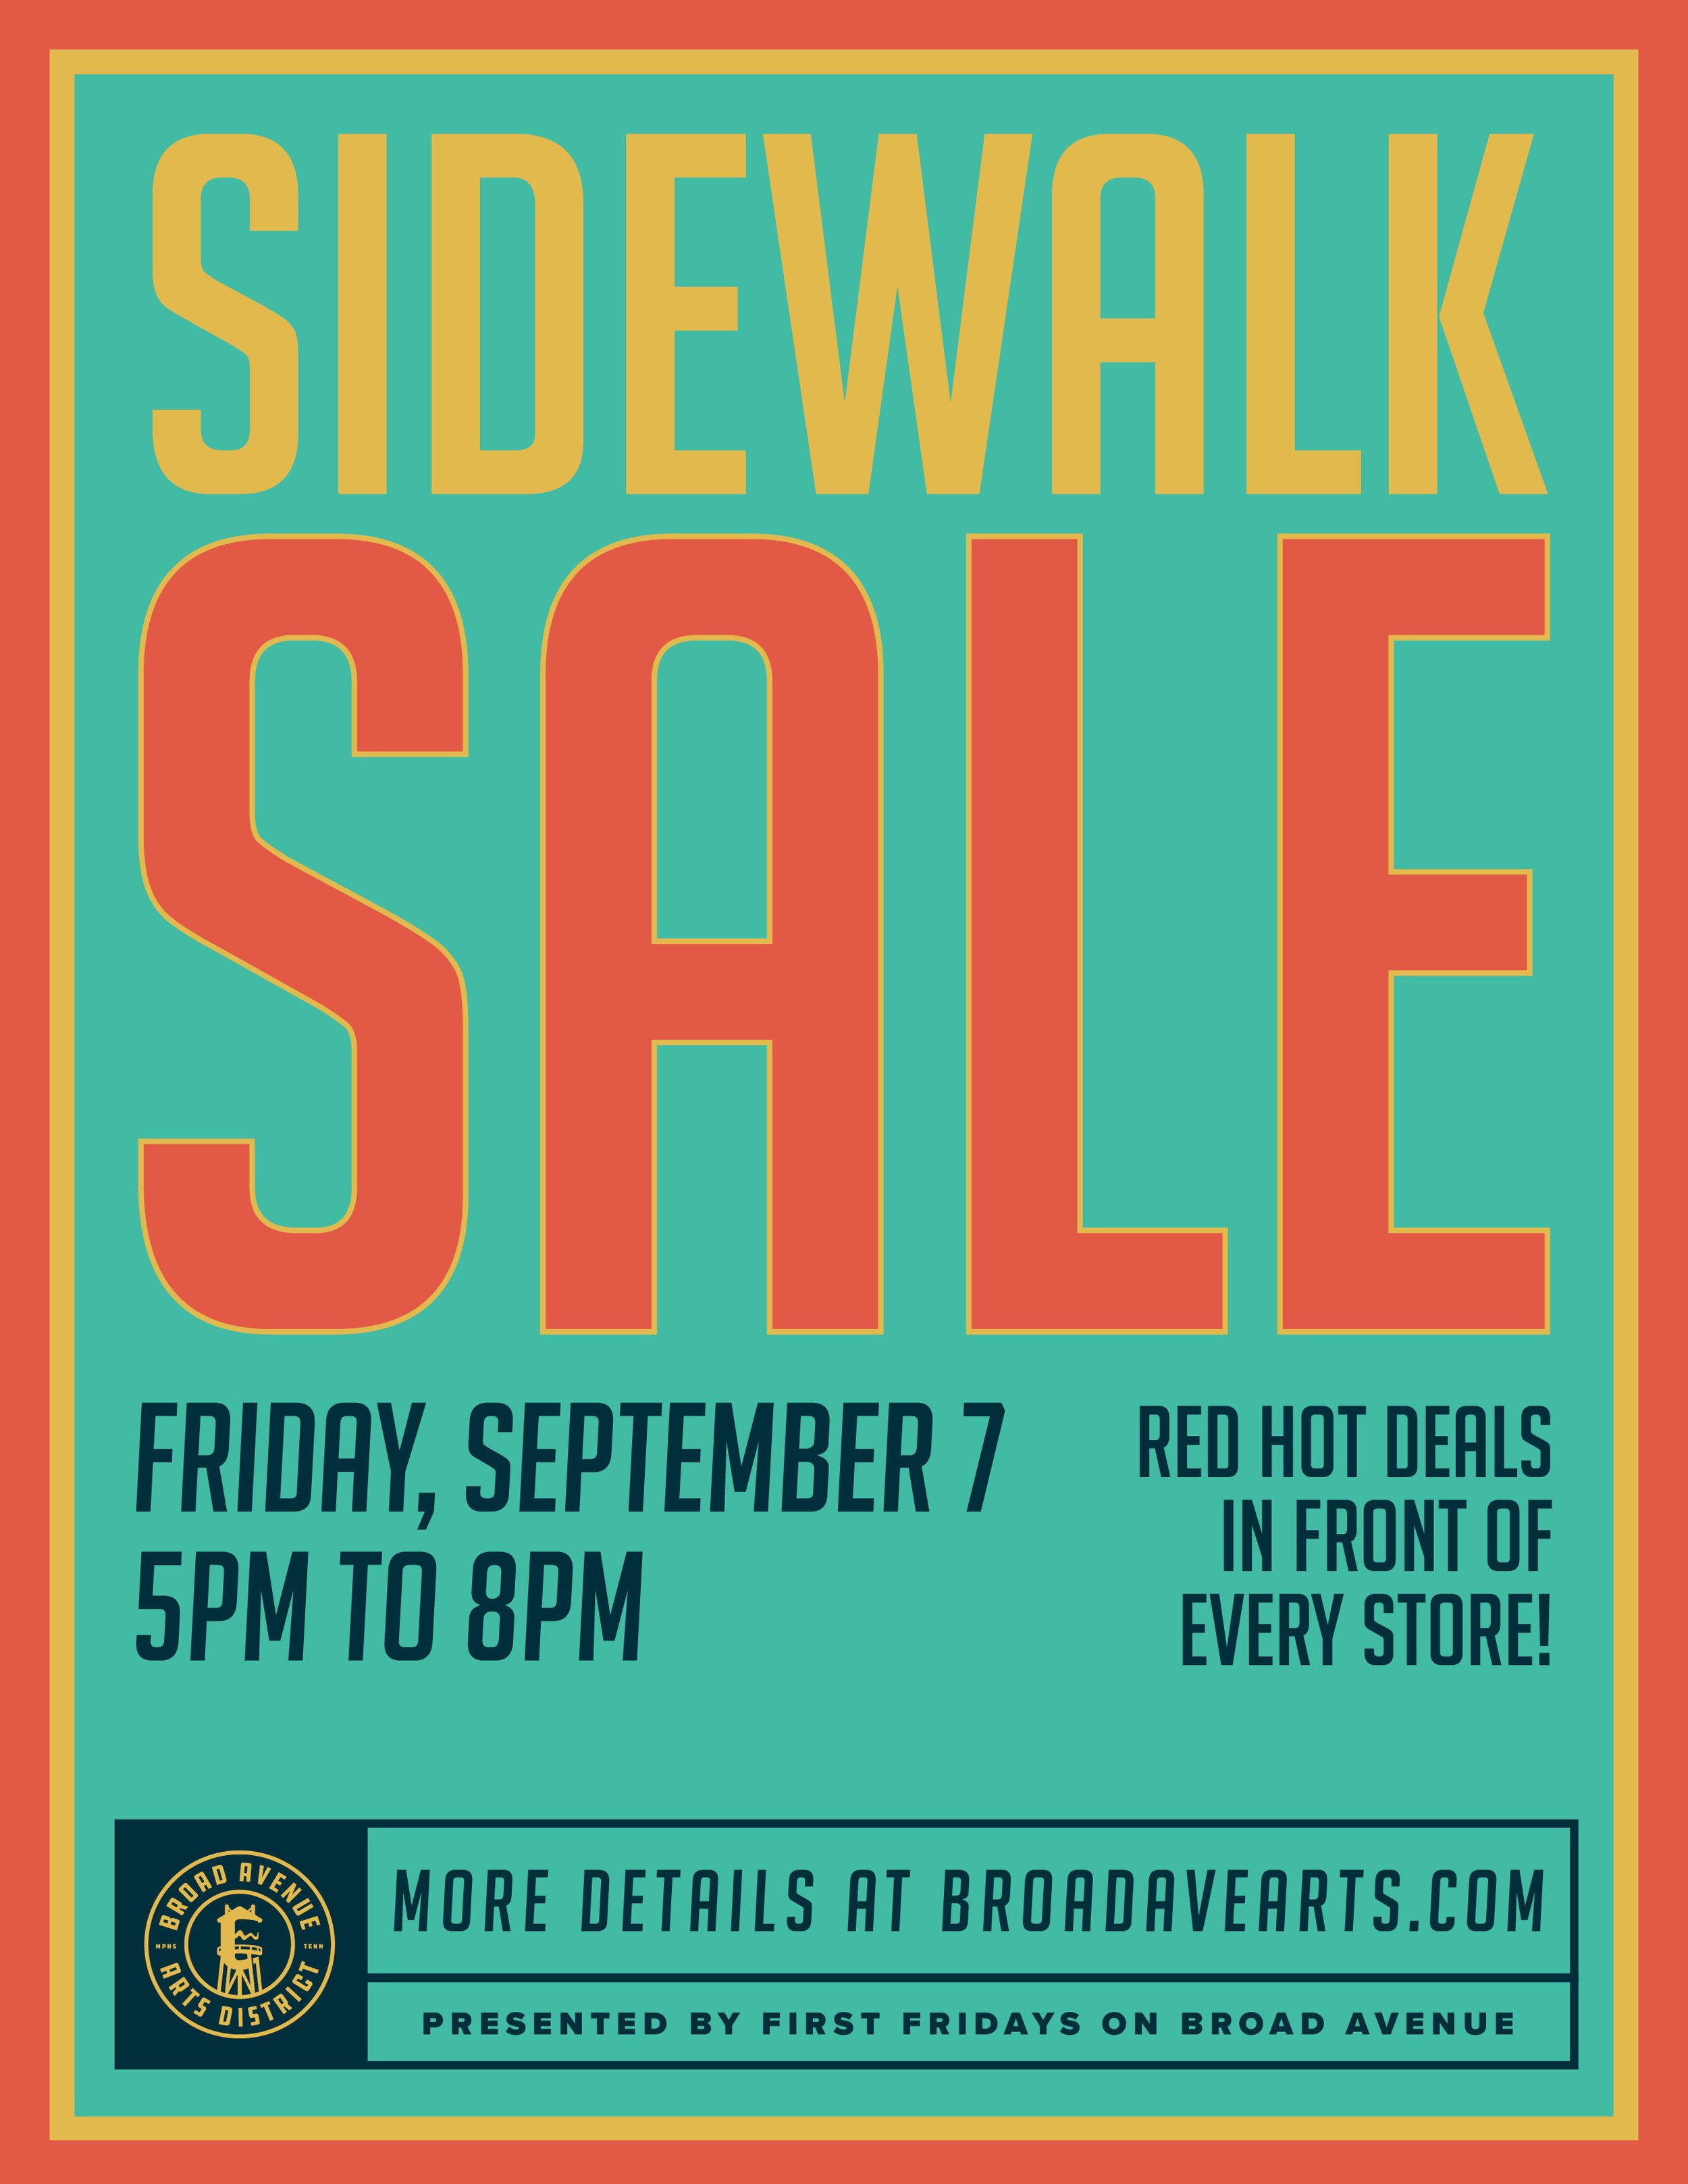 Broad Avenue's annual sidewalk sale!  More than just good deals.    Participating shops:  Bingham & Broad  20twelve  Falling Into Place  T Clifton Art  Pedaltown Bicycle Company  Core Collective Broad  A. Shaw Style  Merchants on Broad  Muddy's Bake Shop  Mbabazi House of Style Memphis  Wiseacre Brewing  Memphis Friends of the Library will have a great selection of $2 books and merchandise such as tees, bags, earrings, necklaces, book lights, pens. All proceeds benefit the Memphis Public Libraries.  Madewell (Saddle Creek) will be set up with their denim cart in front of Falling Into Place. Donate an old pair of jeans and you will receive $20 off of a future pair of Madewell jeans, a free tote, some popcorn, and water!